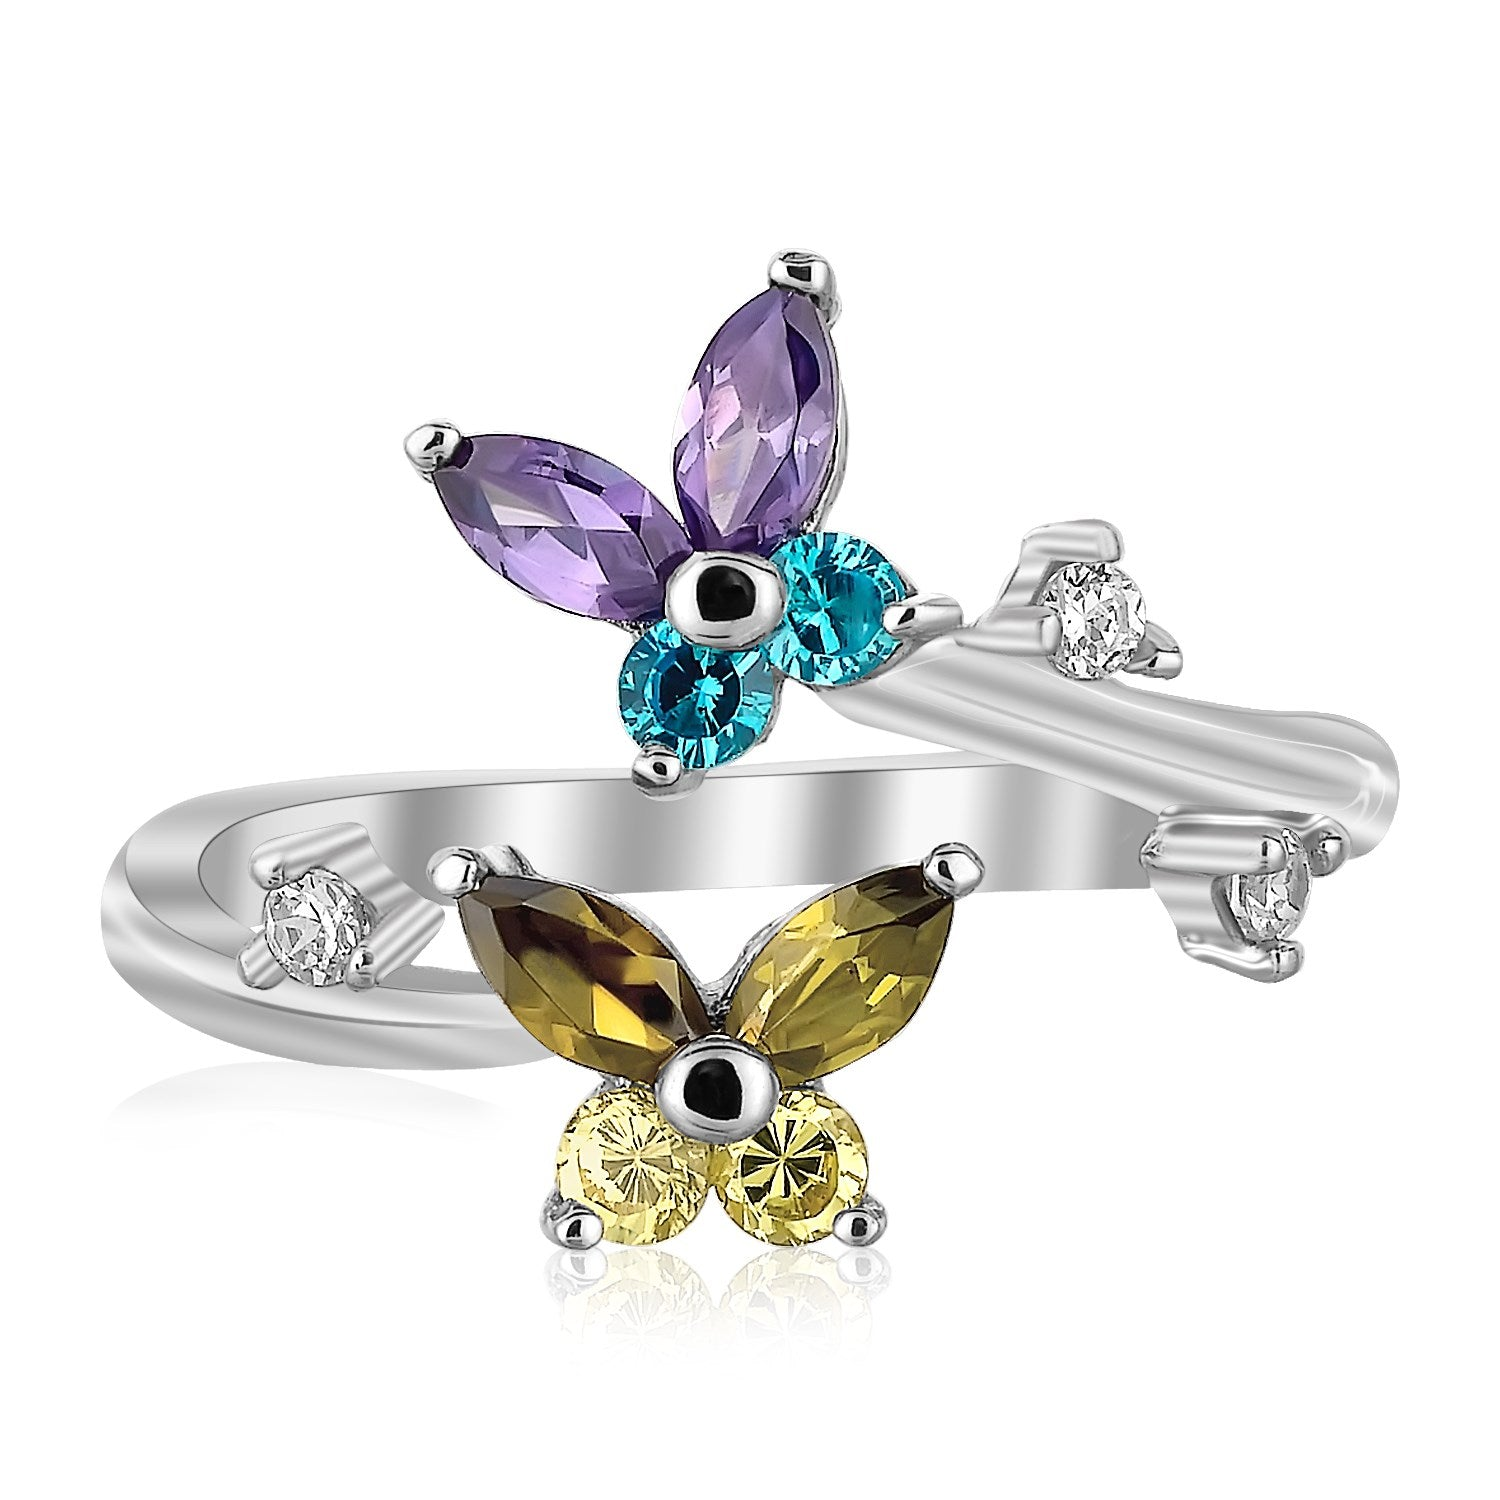 Sterling Silver Rhodium Plated Floral Toe Ring with Multi-Tone Cubic Zirconia - Uniquepedia.com